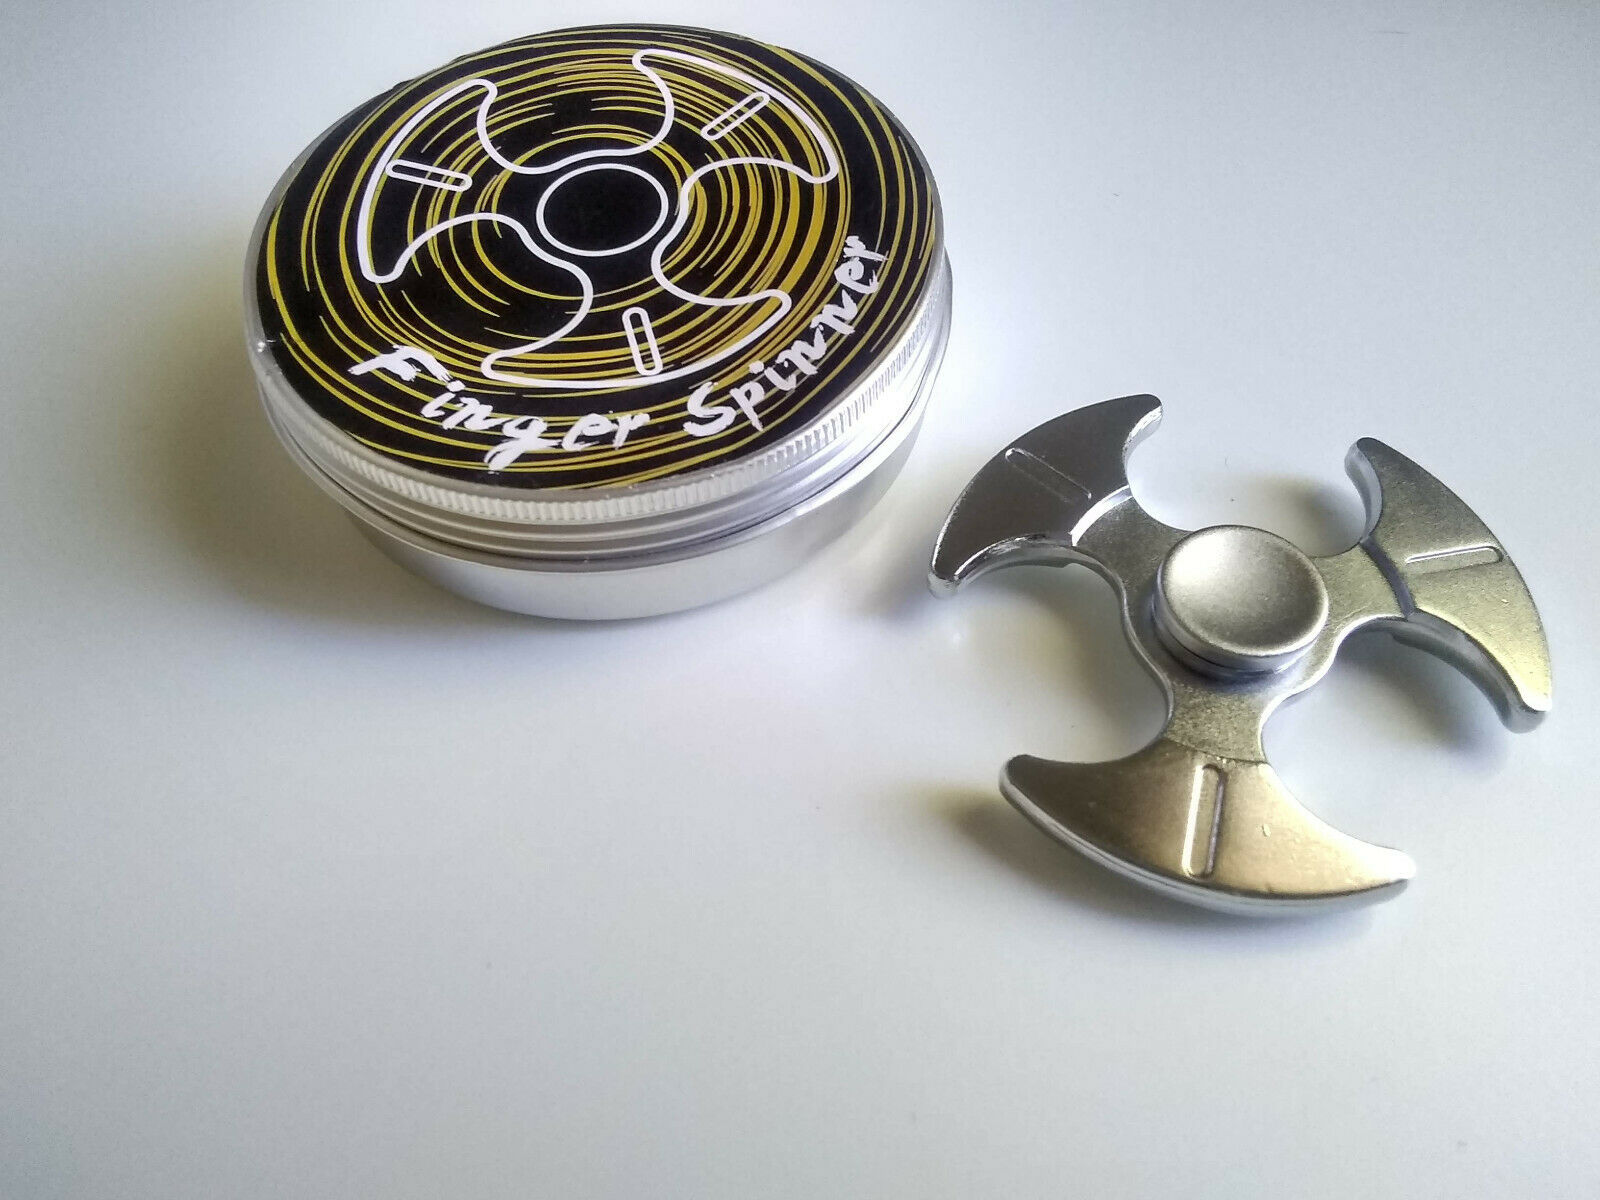 All Metal Rose Gold Fidget Spinner Boys Girls Adults Kids Toys ADHD EDC